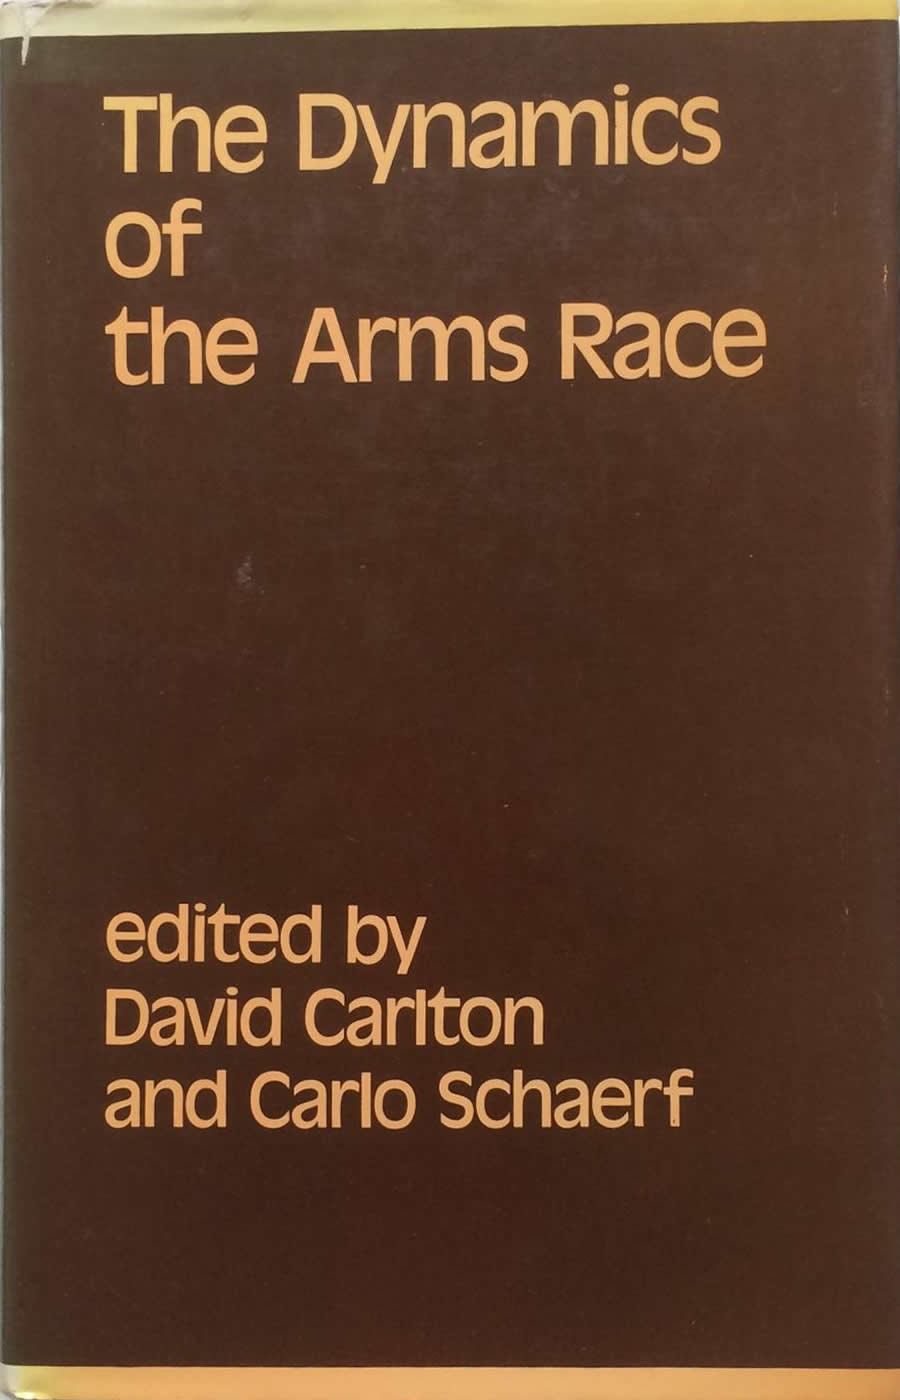 Book Cover - The Dynamics of the Arms Race